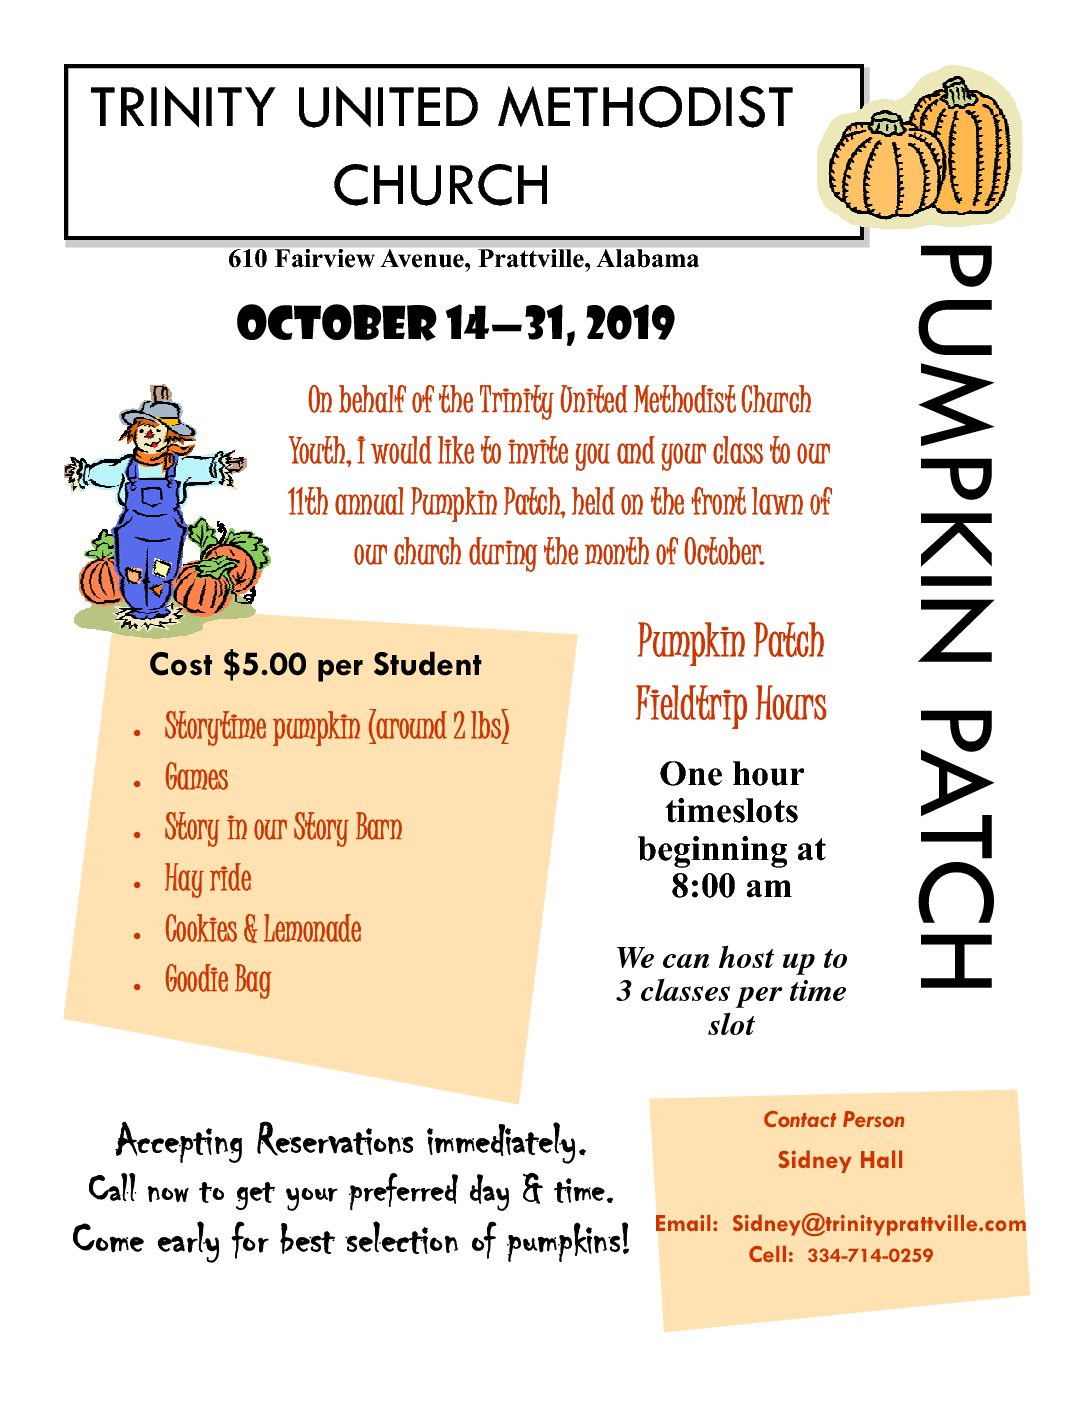 Pumpkin Patch Information